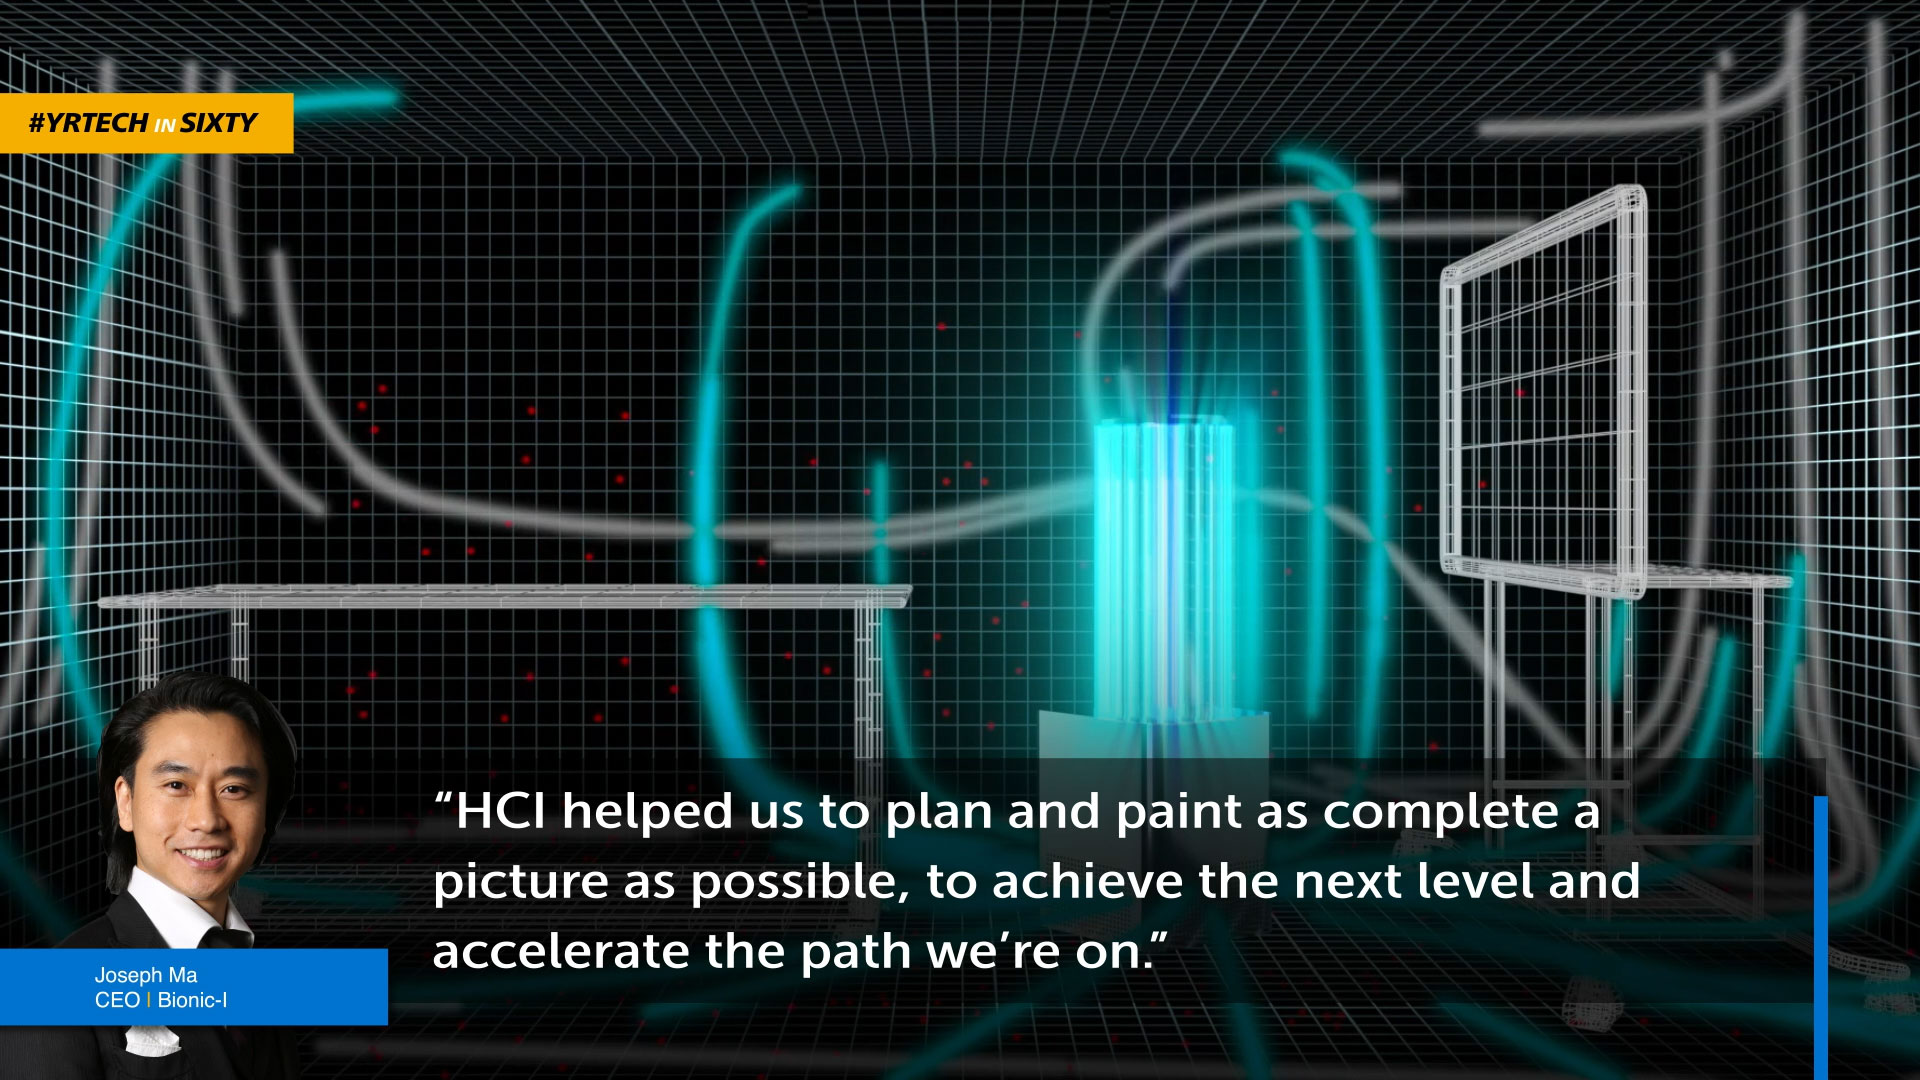 Bionic-I CEO quote and rendering of a product